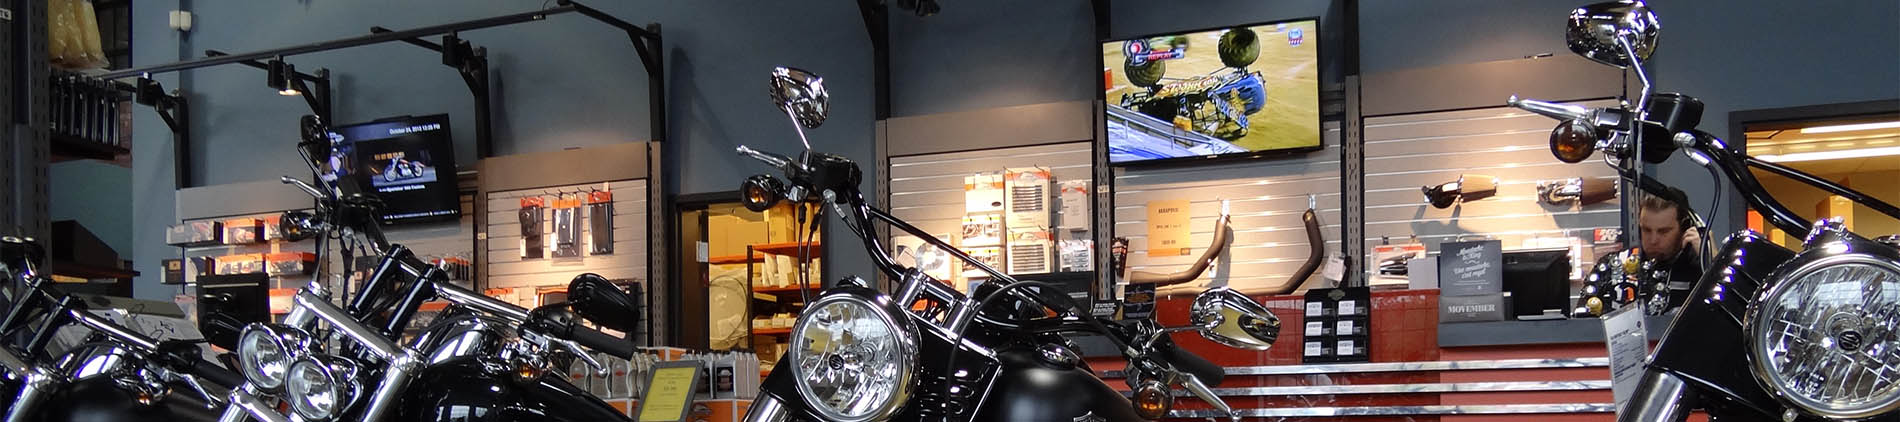 Commercial, Harley, Davidson, Display, restaurant audio video